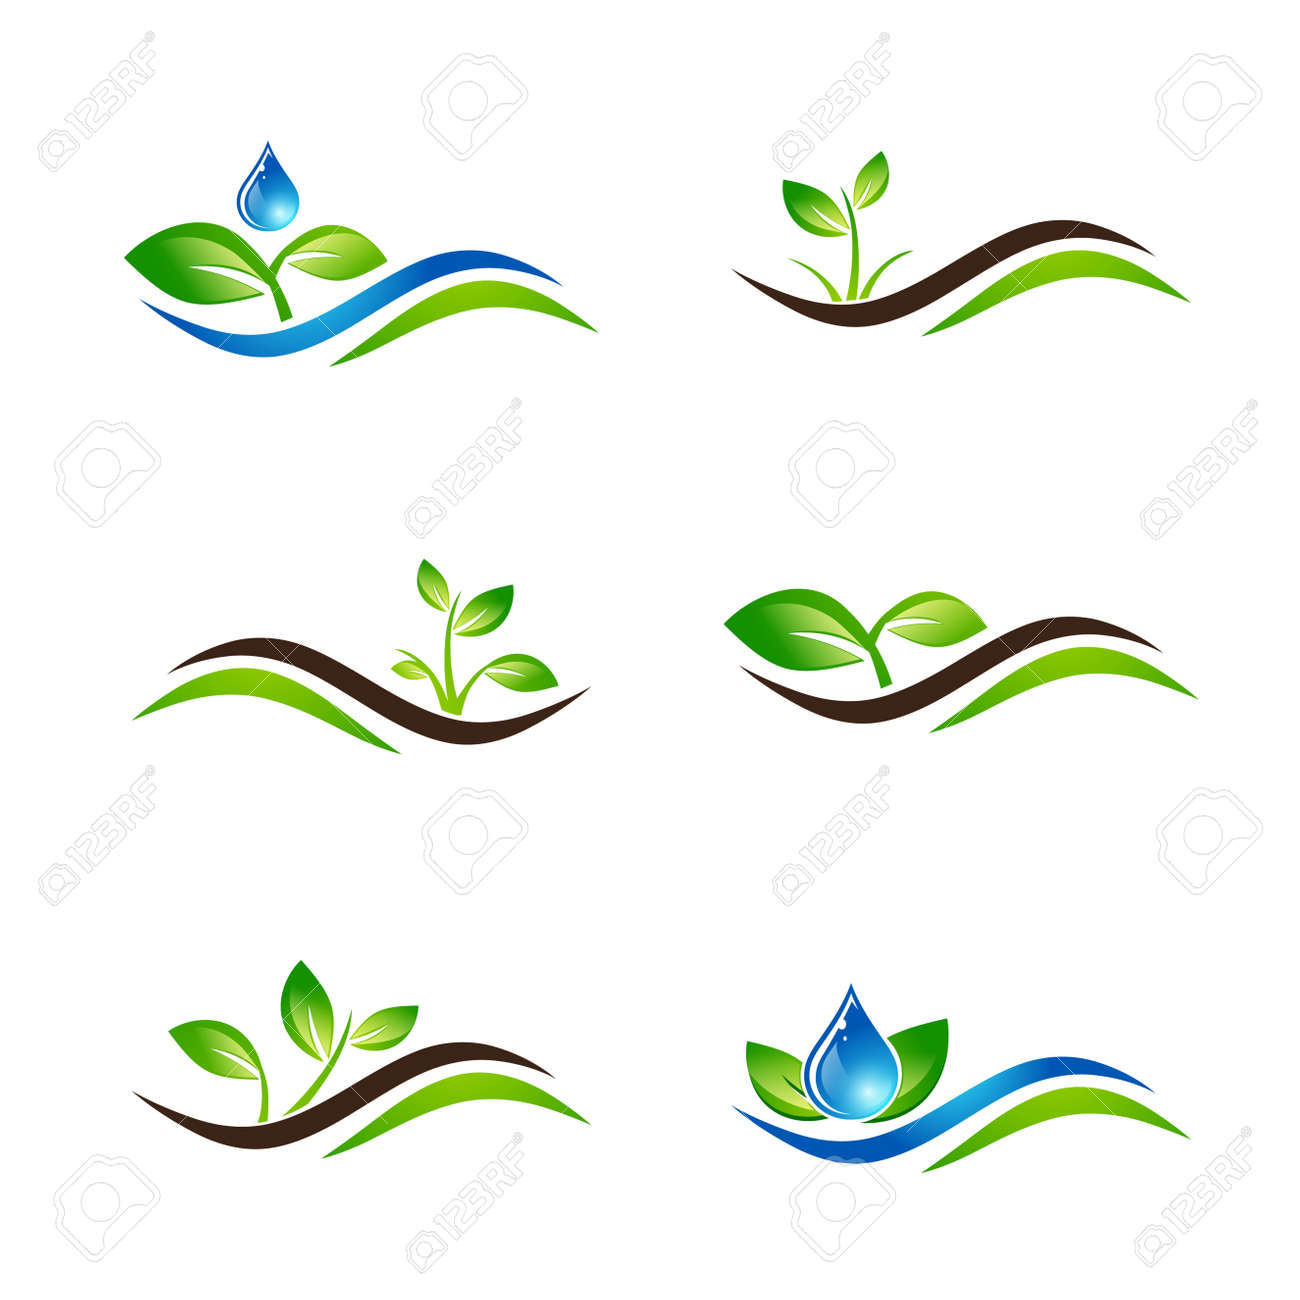 Green Sprout Landscape Agricultural Icon Design Collection Over White - 52562787